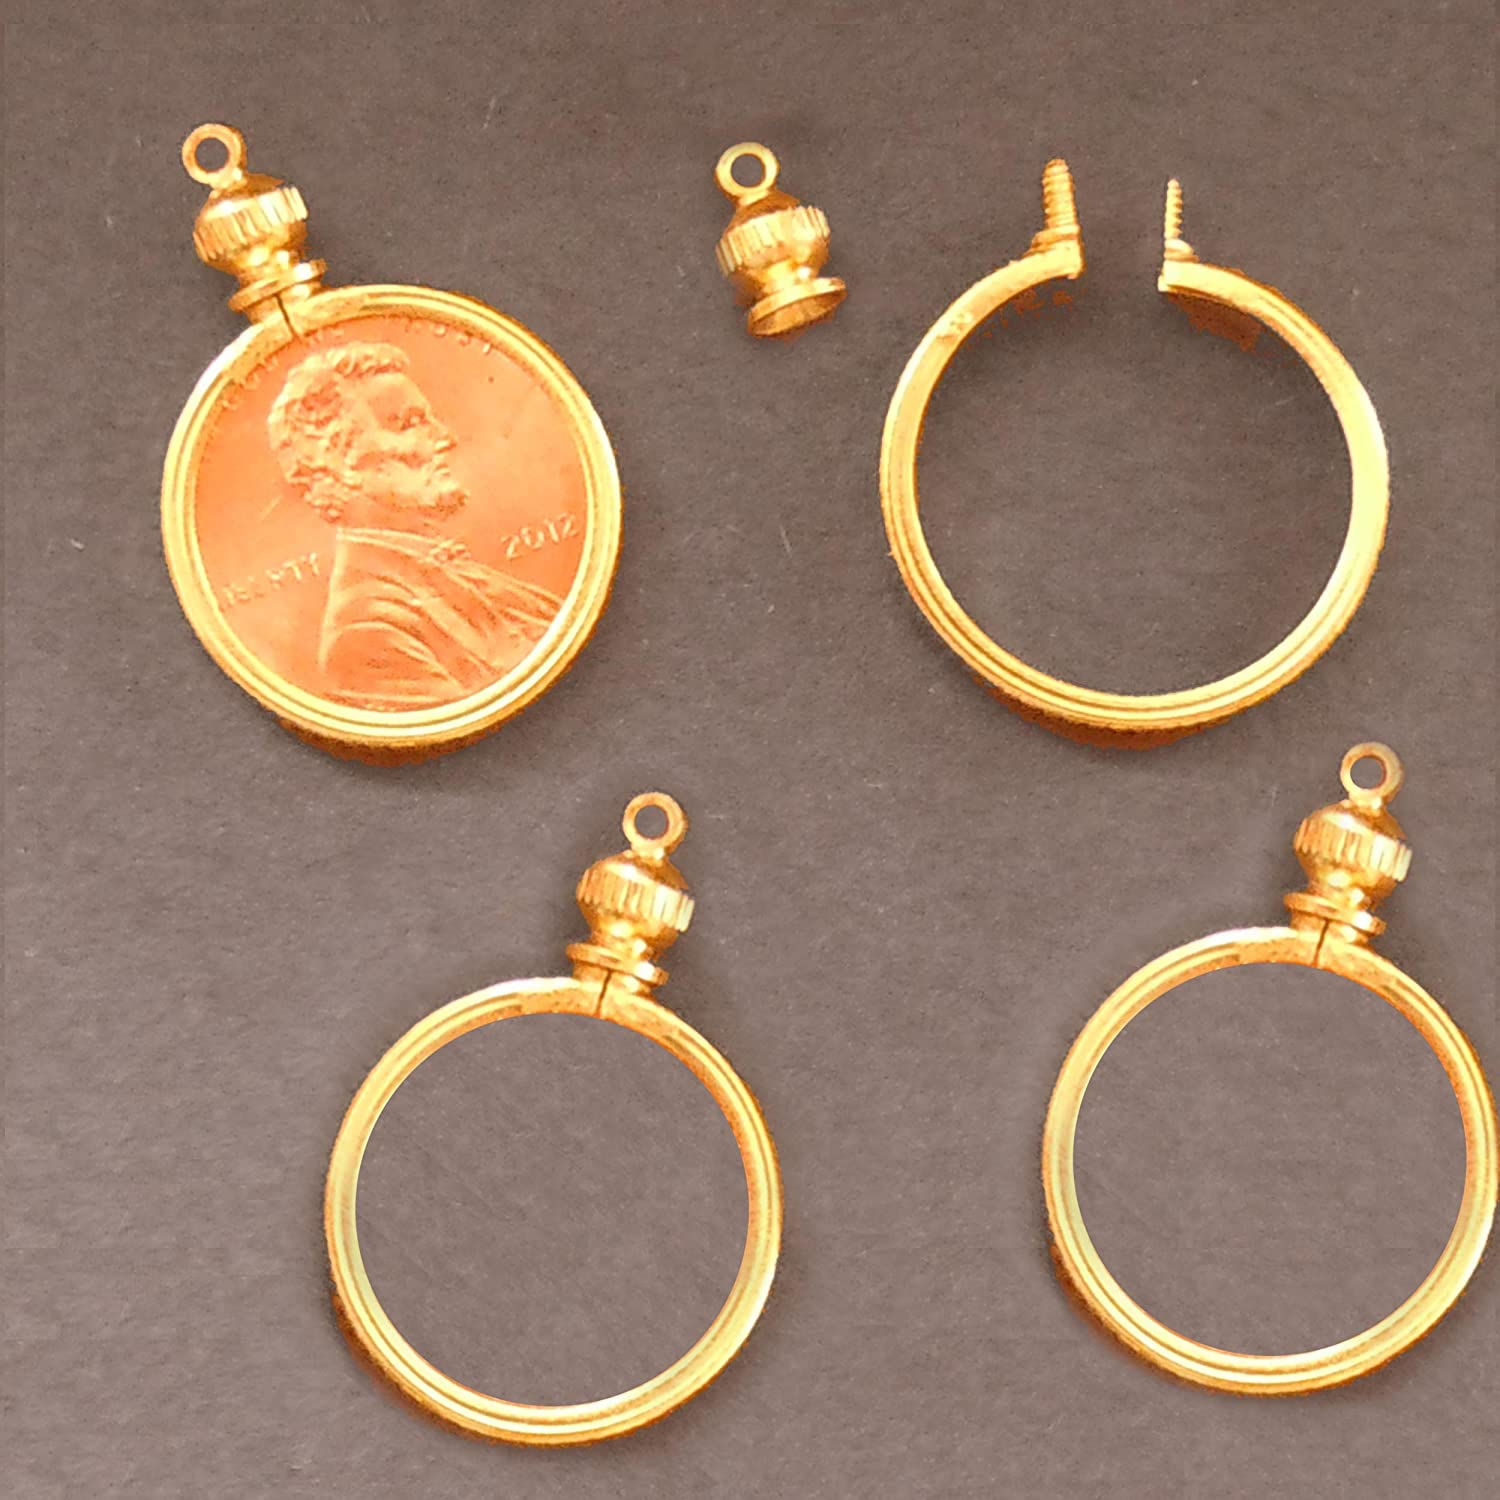 Amazon 1 cent usa penny coin holder bezel gold tone for amazon 1 cent usa penny coin holder bezel gold tone for charm necklace pendant display pack of 4 toys games aloadofball Gallery